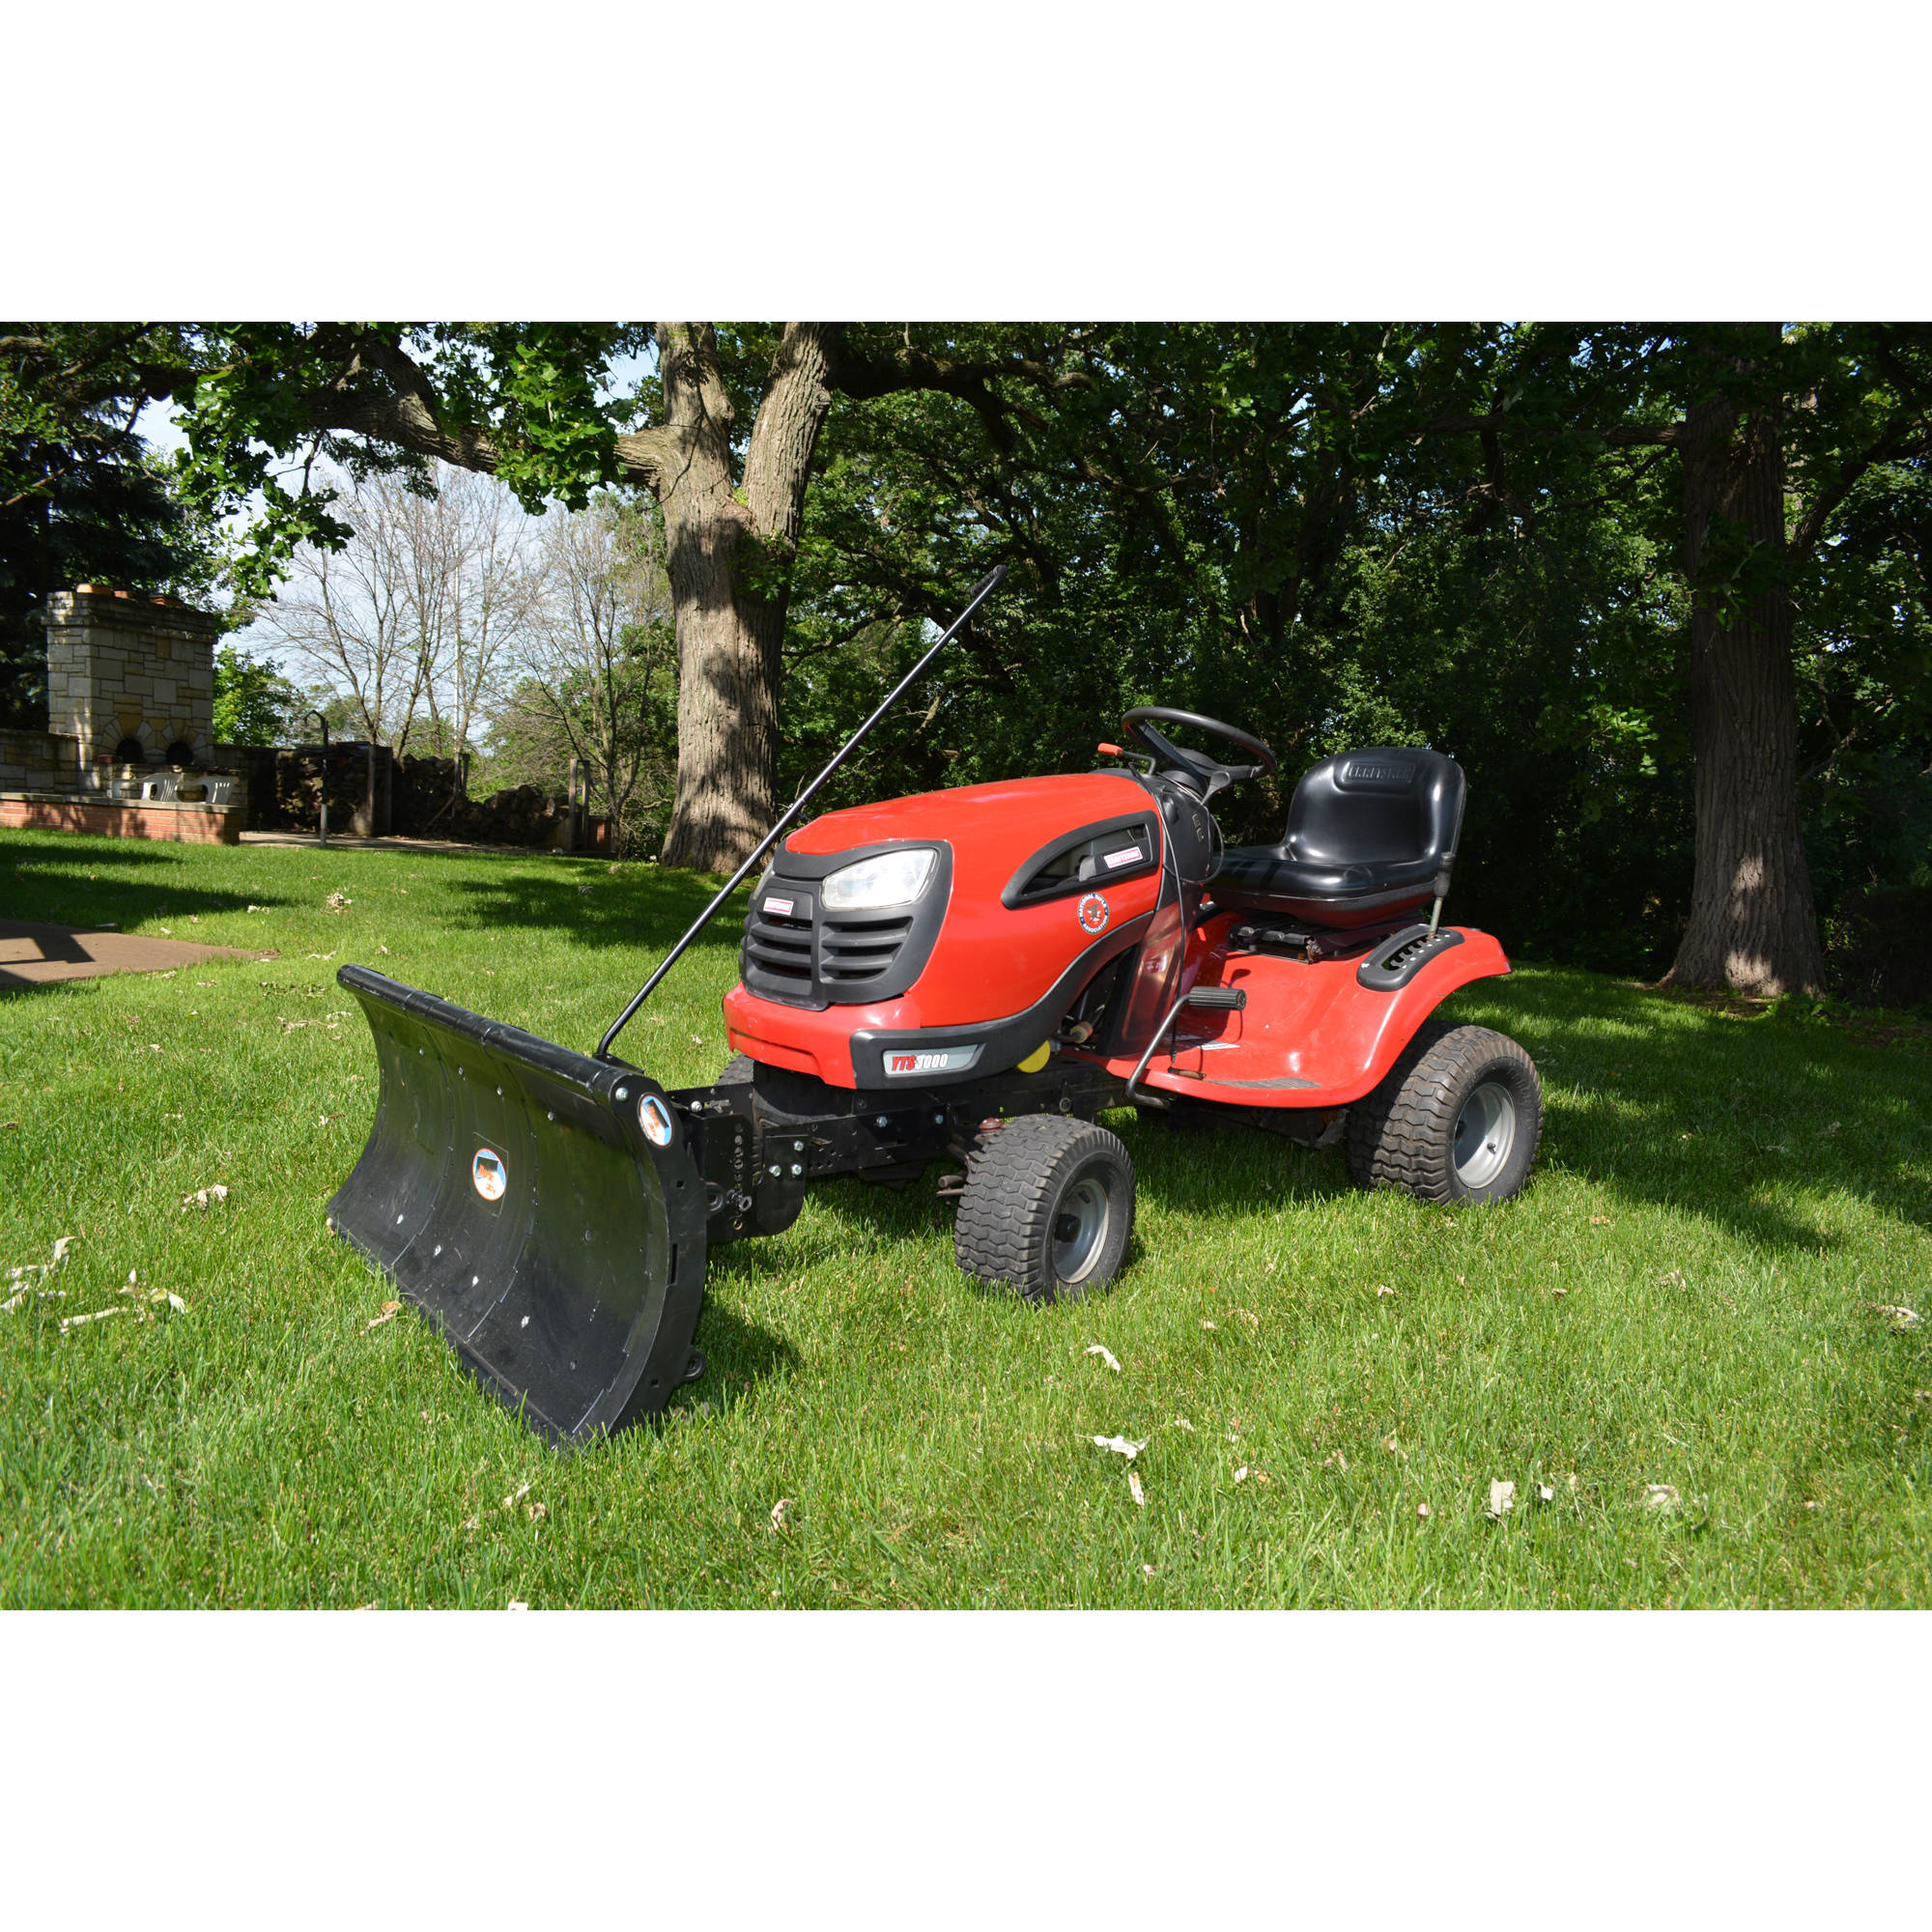 Nordic Plow 49 Quot Lawn Tractor Plow With Lift Handle Ebay